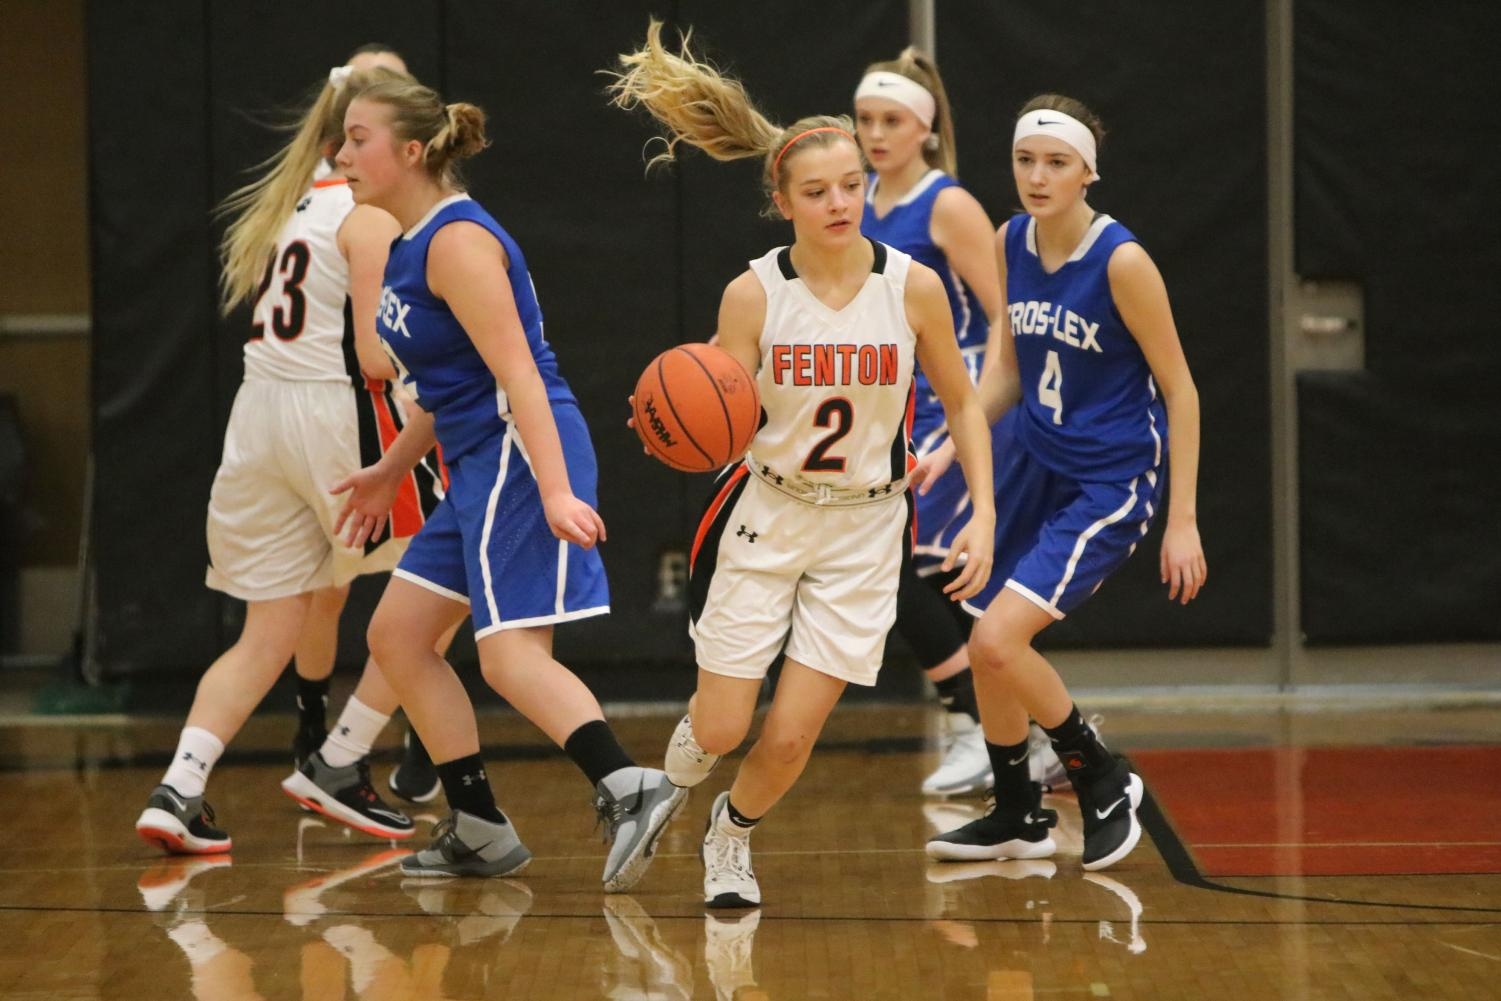 The basketball is dribbled down the court by freshman Jordyn Bommersbach during a game. On Jan. 8, the freshman girls basketball team played Lexington-Crosswell, winning 50-23.